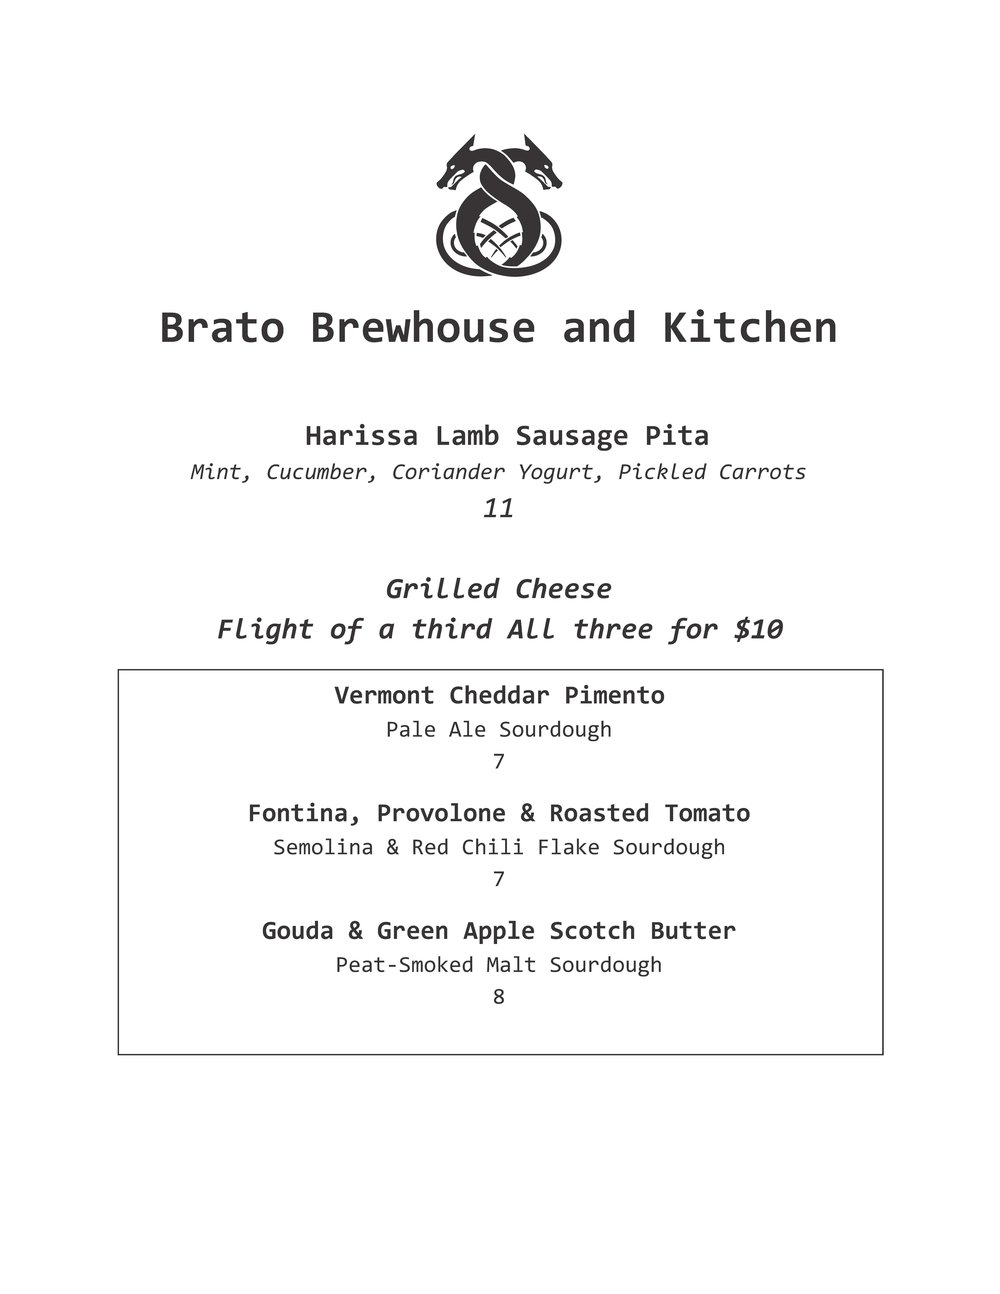 Lifelong Vacation Release + Brato Easter Pop-Up — Night Shift Brewing